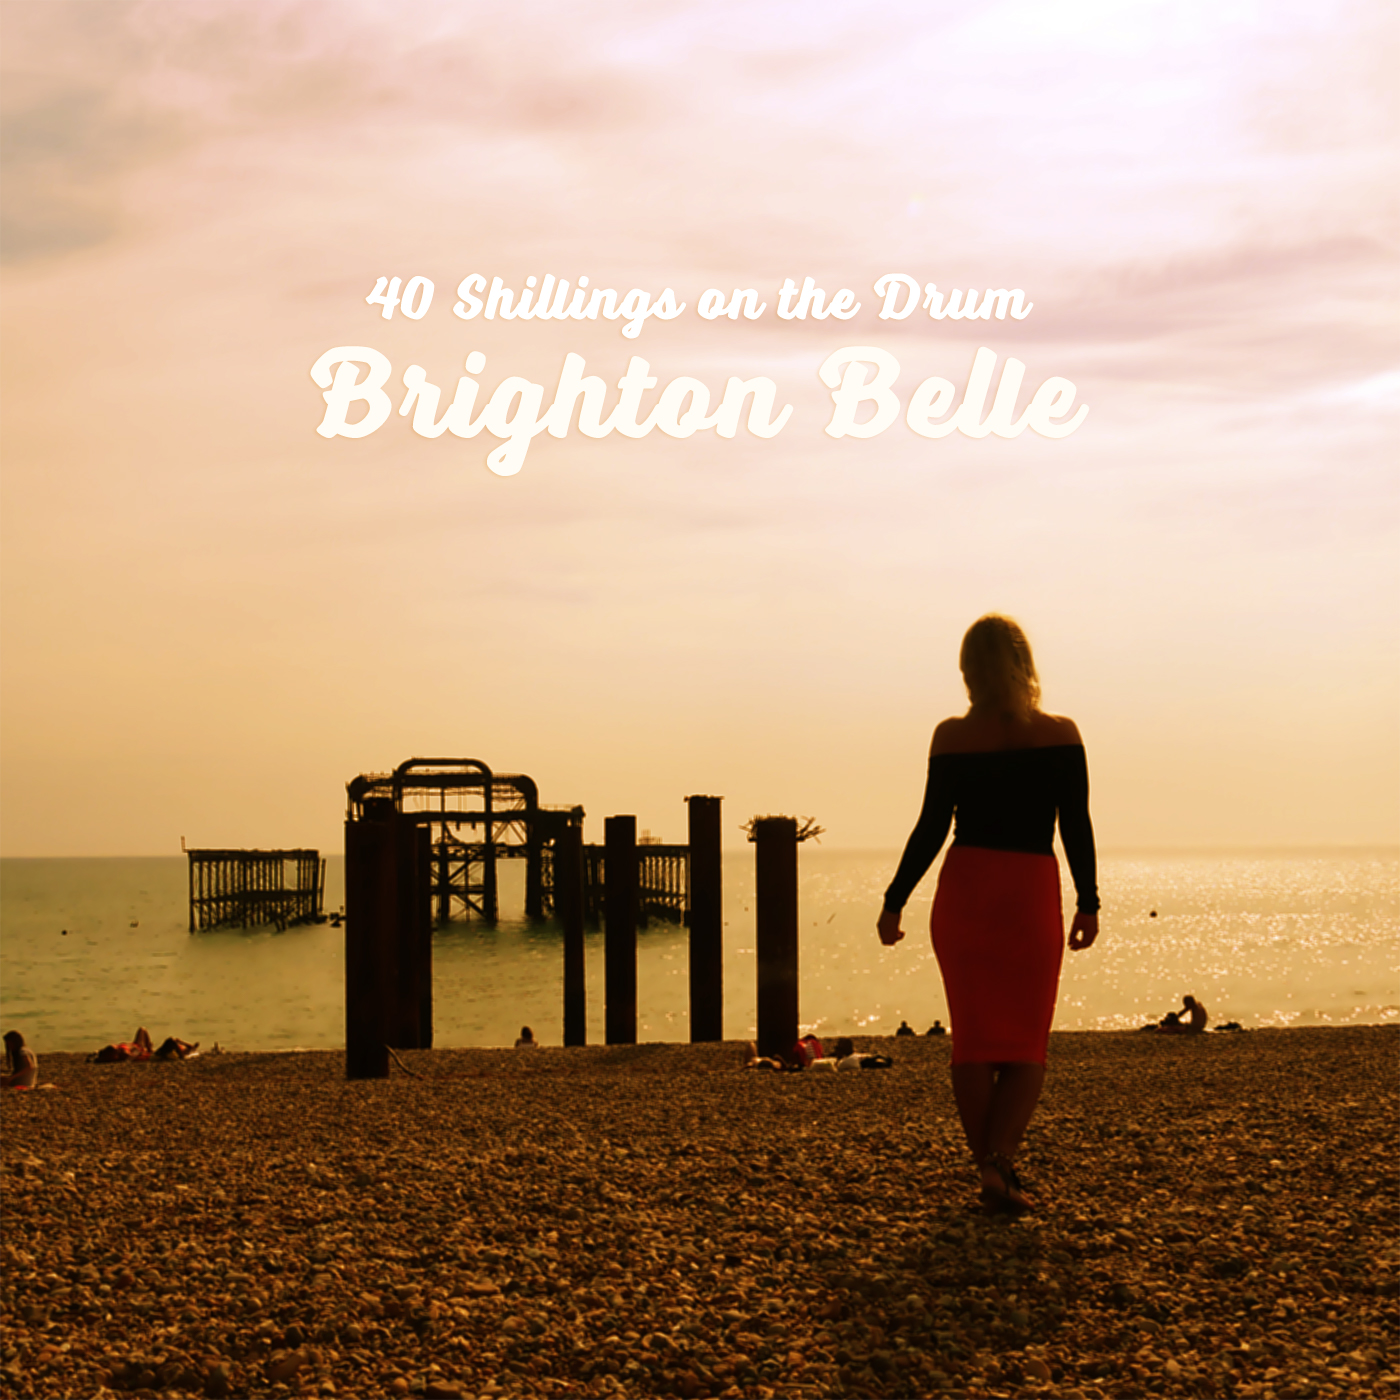 Brighton Belle - 40 Shillings on the Drum